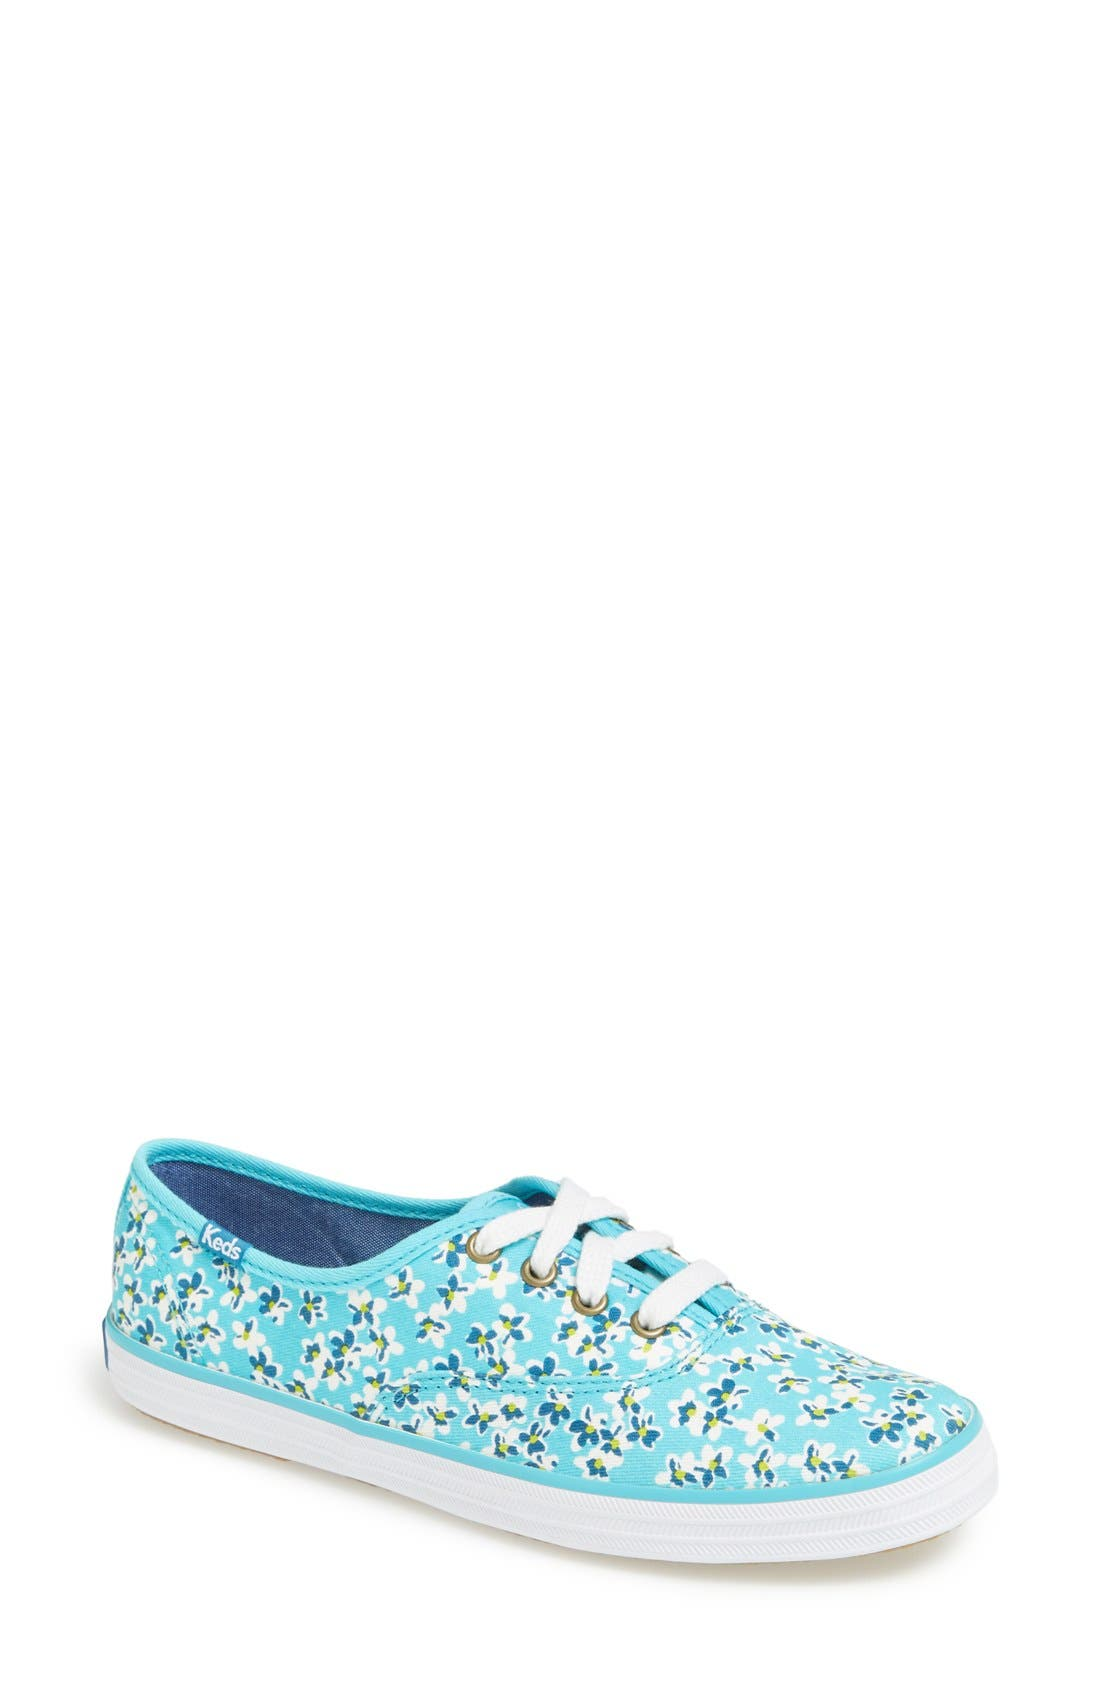 Main Image - Keds® Taylor Swift 'Champion Sunpie Floral' Sneaker (Women)